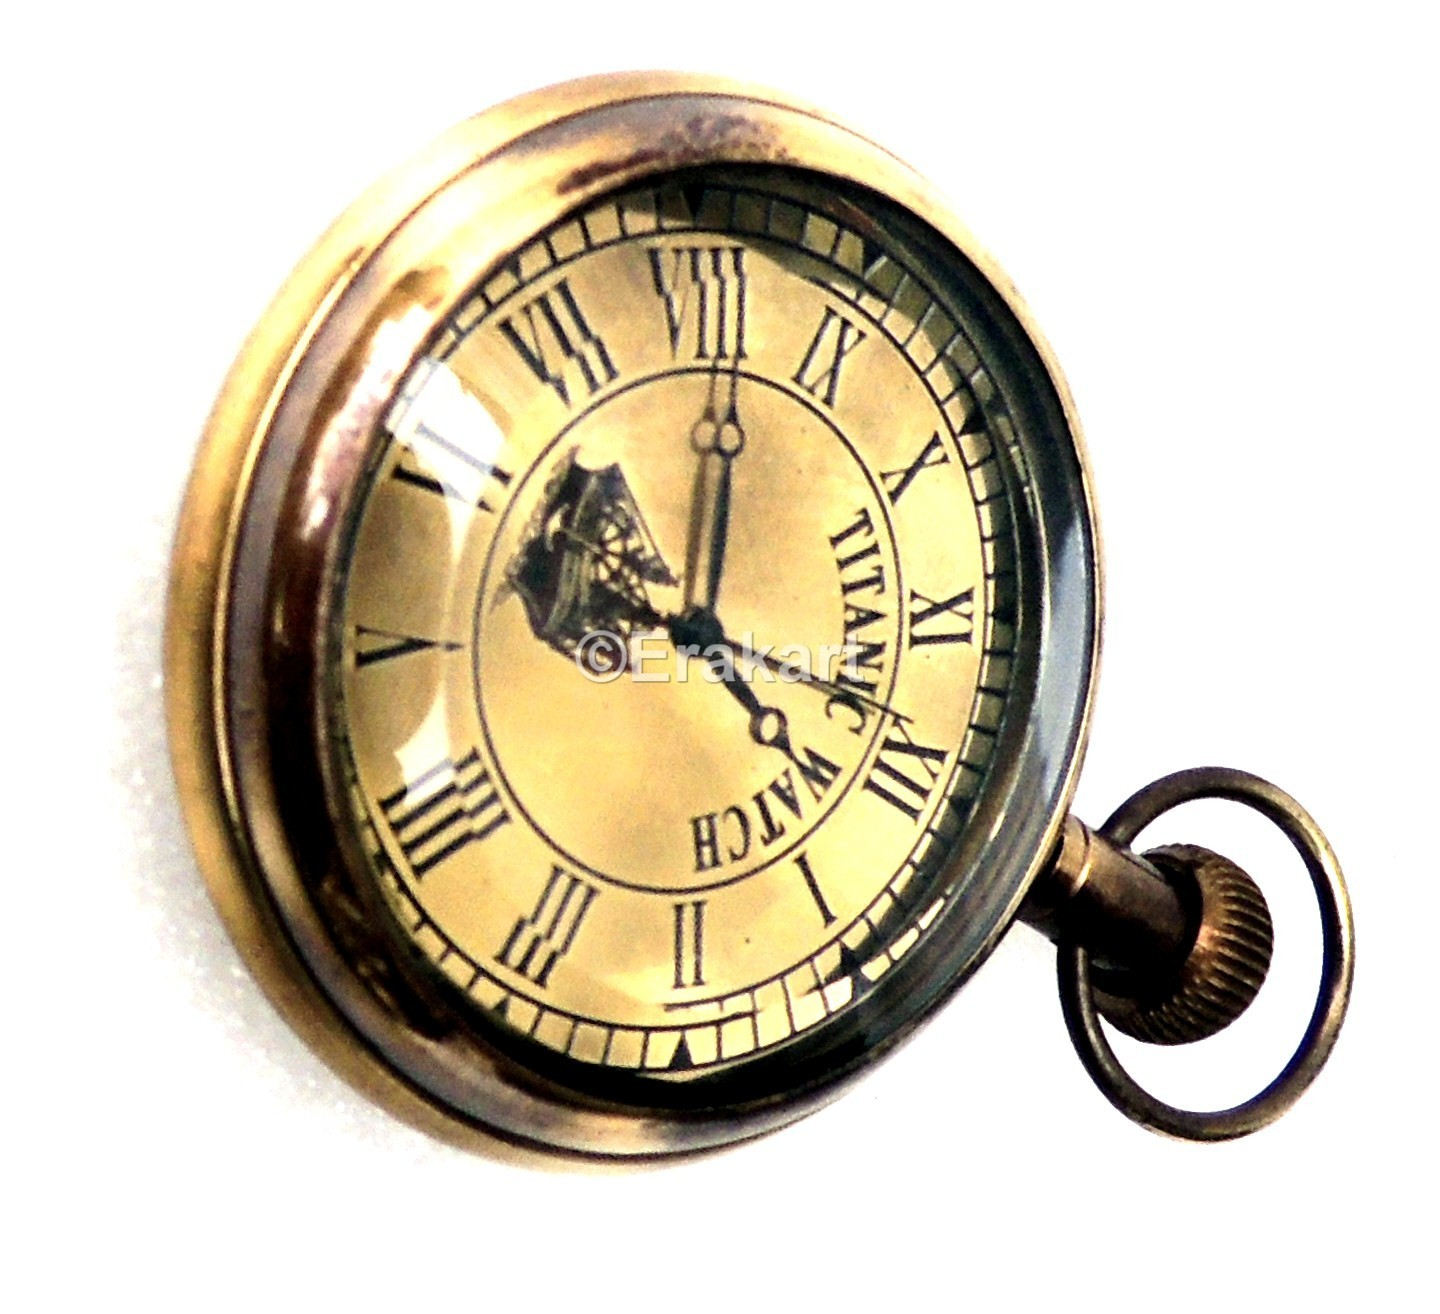 Antique pocket watch in brass buy titanic pocket watches online amipublicfo Images